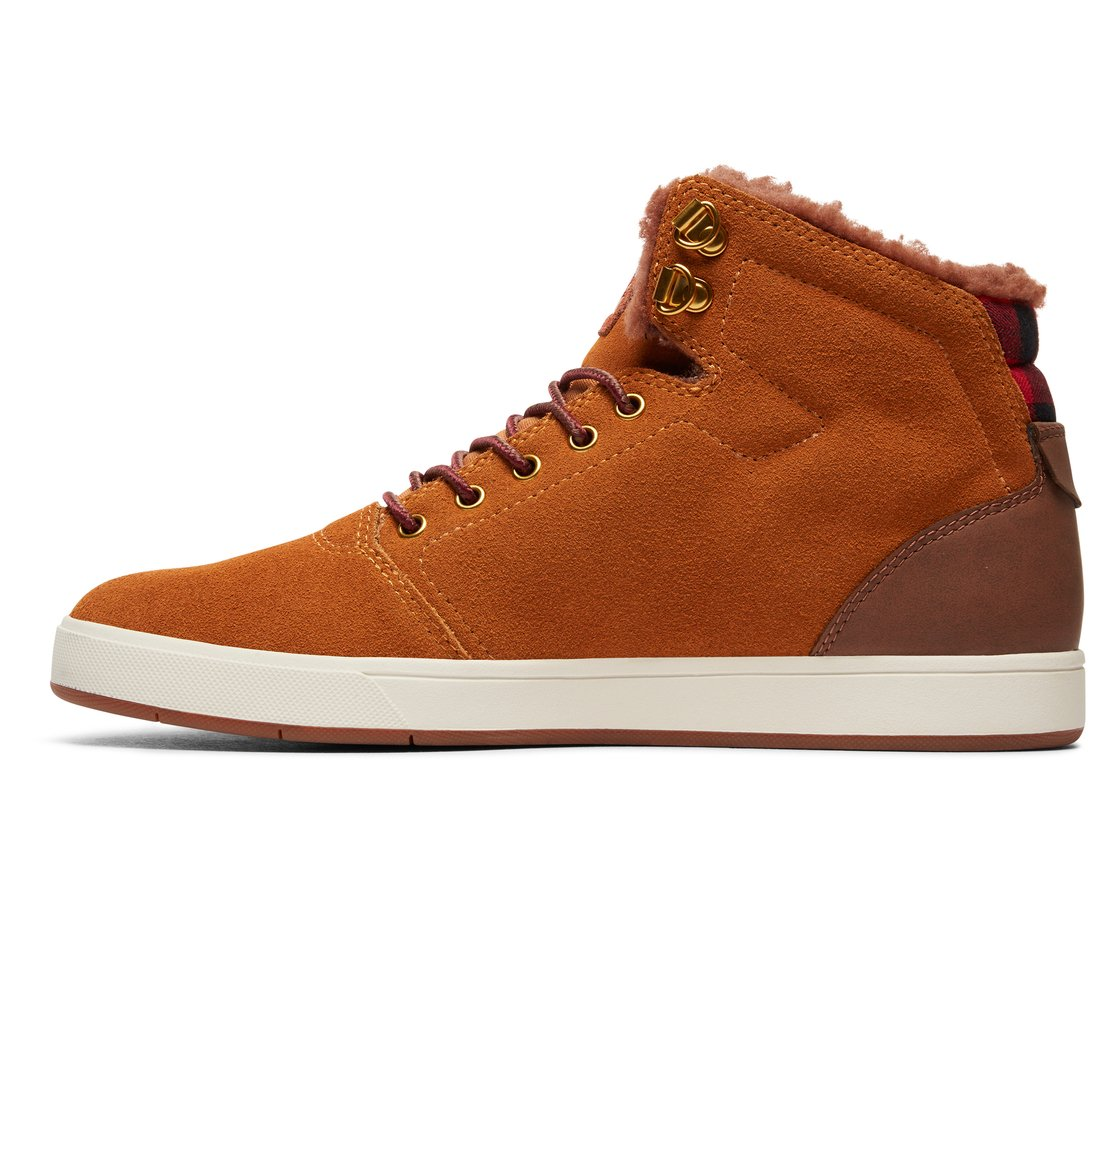 DC Shoes Crisis High - High-Top Shoes - Chaussures montantes - Homme